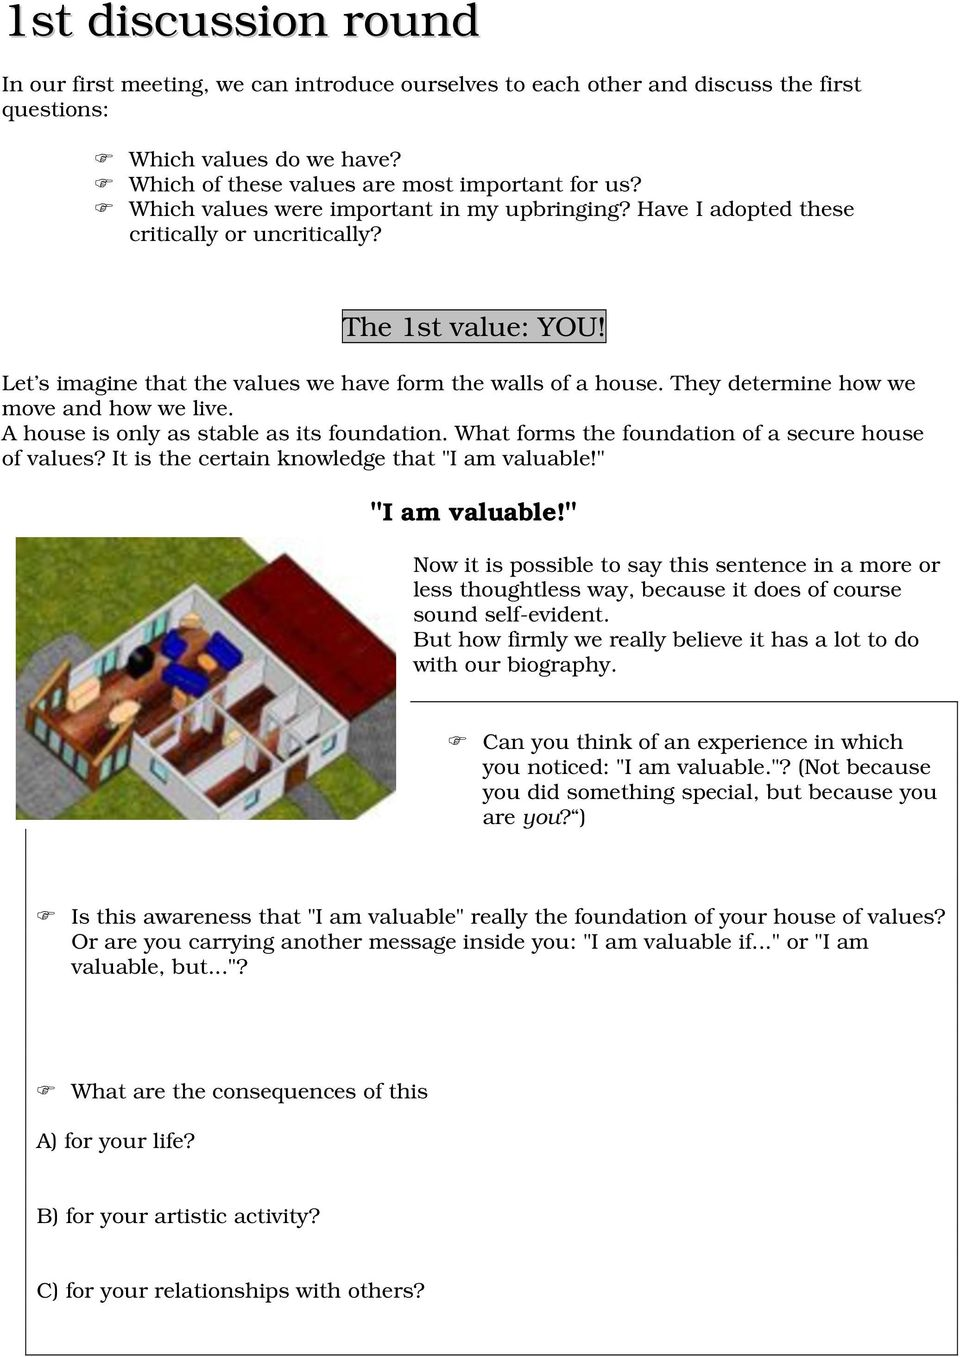 "They determine how we move and how we live. A house is only as stable as its foundation. What forms the foundation of a secure house of values? It is the certain knowledge that ""I am valuable!"